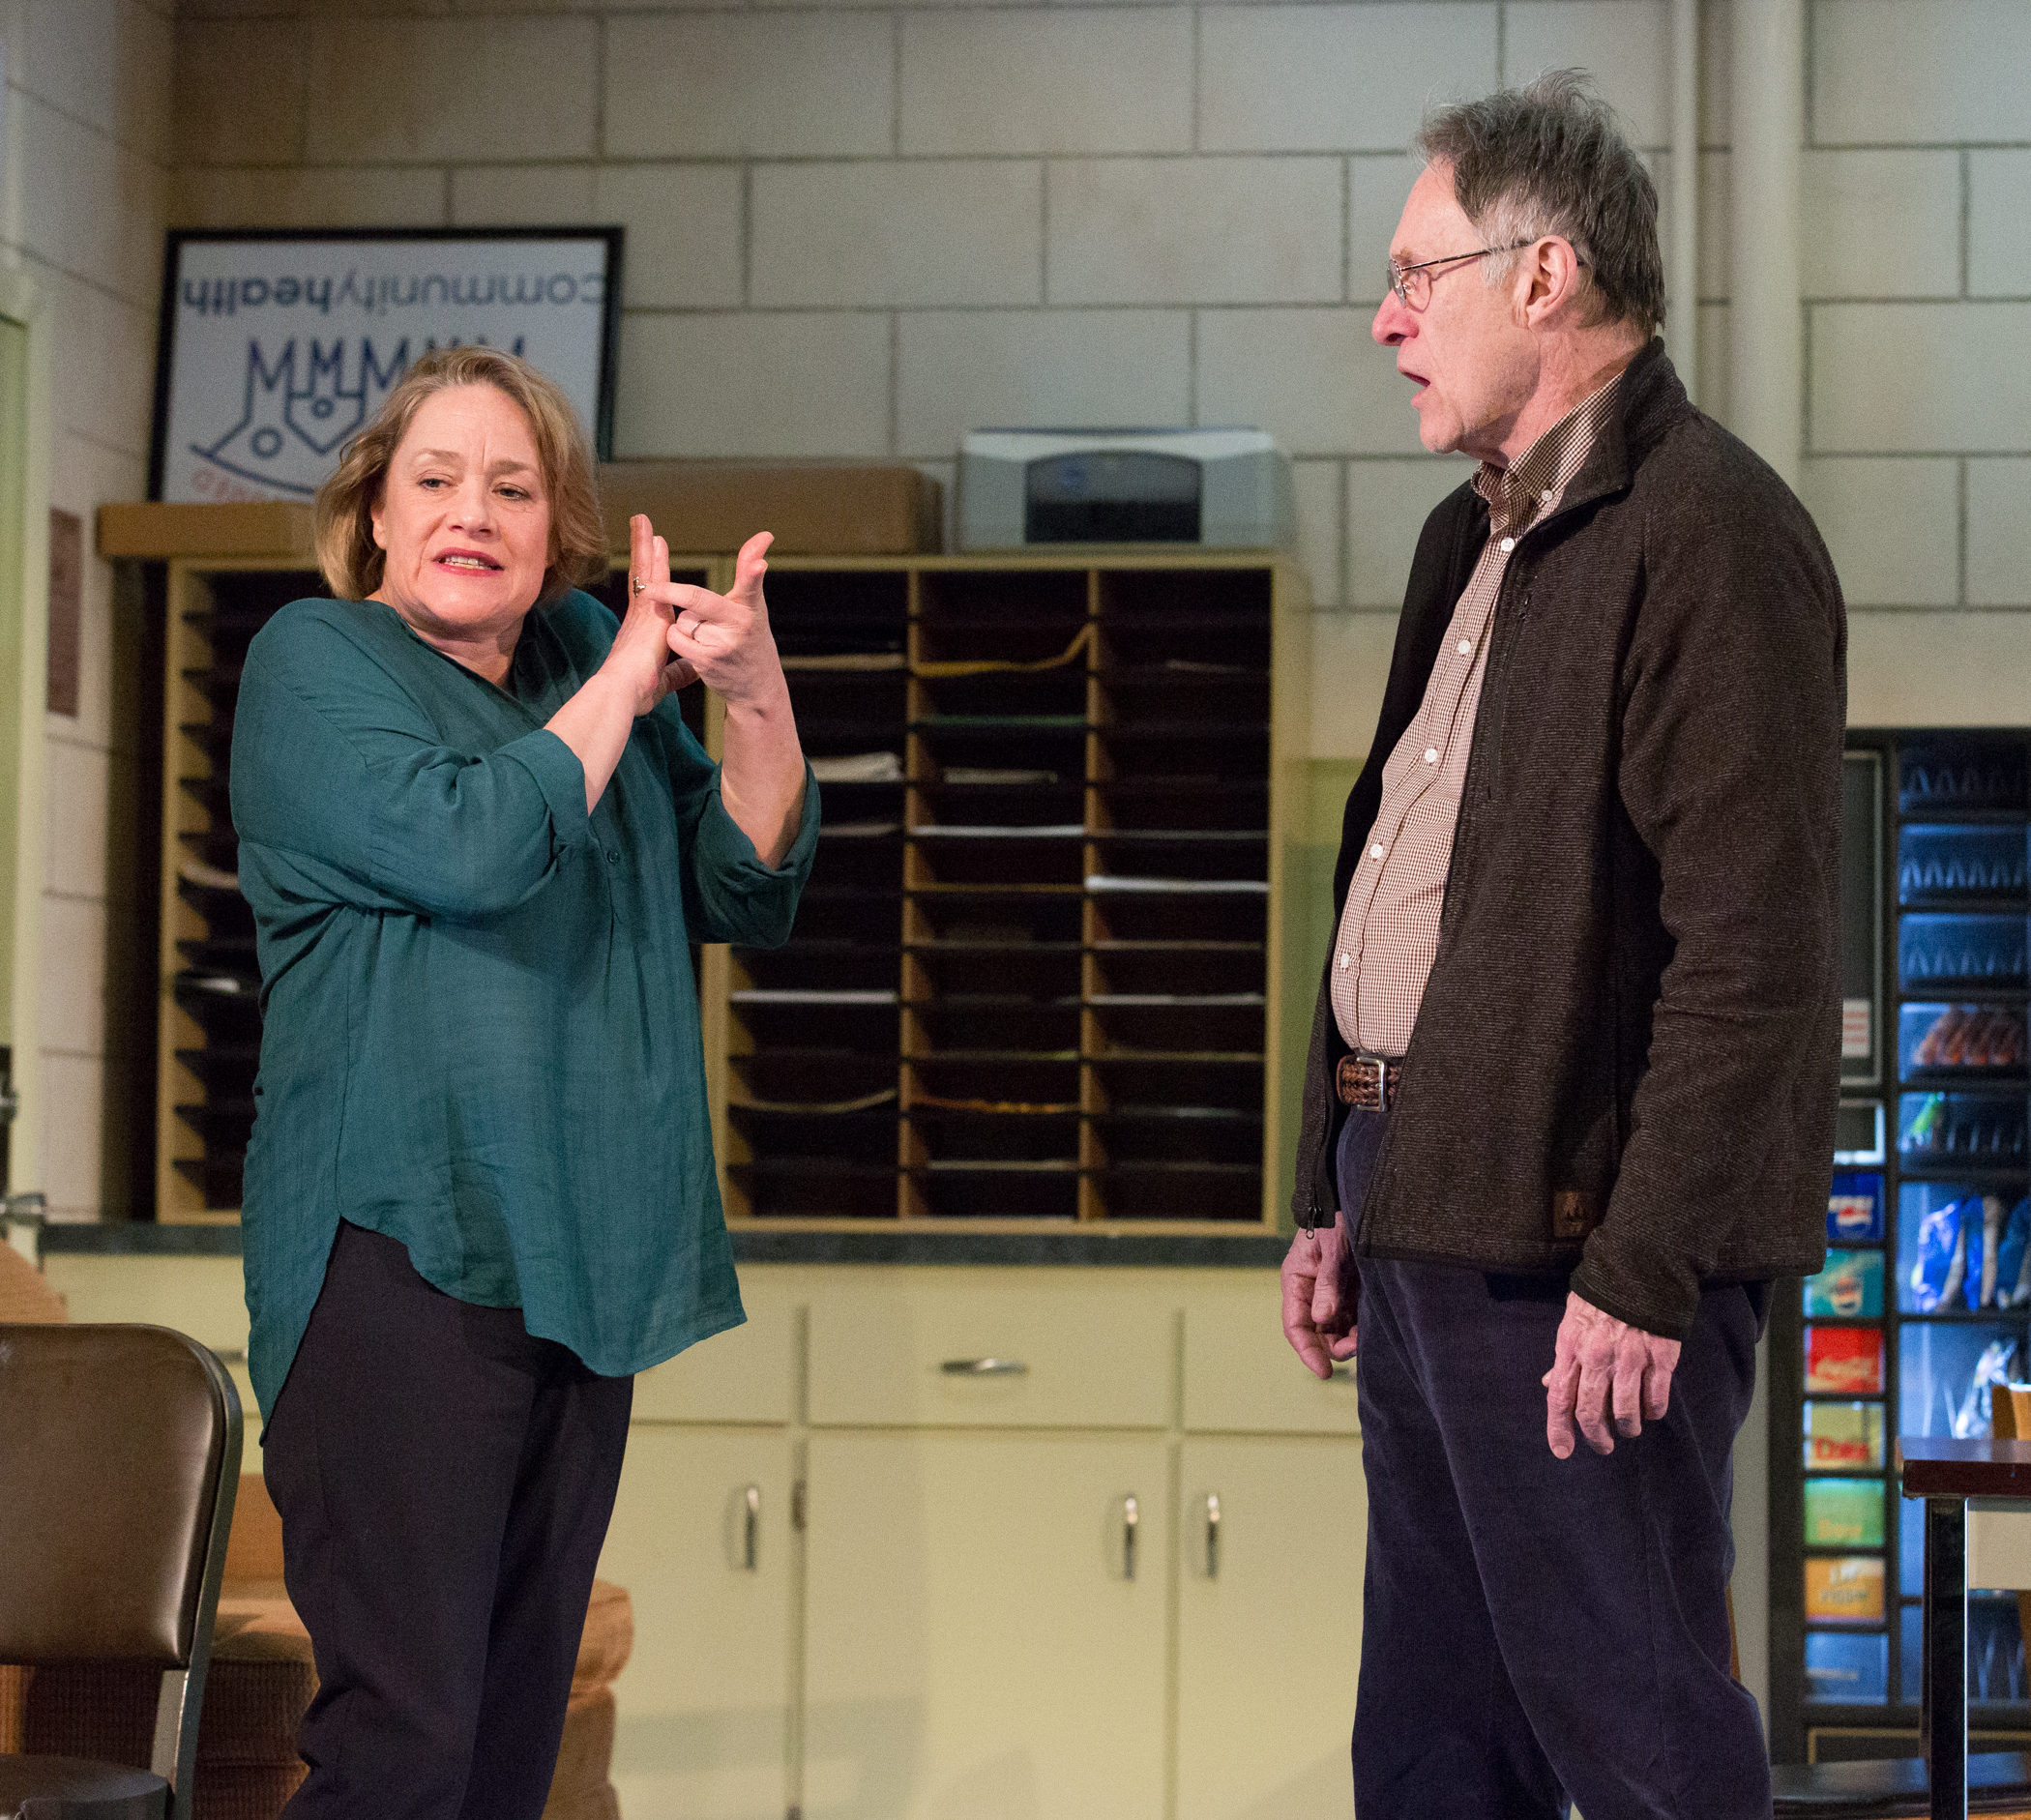 Deirdre Madigan and Michael Cullen in Philadelphia Theatre Company's production of the East Coast premiere of EXIT STRATEGY by Ike Holter, running through February 28 at the Suzanne Roberts Theatre.  Photo credit: Mark Garvin